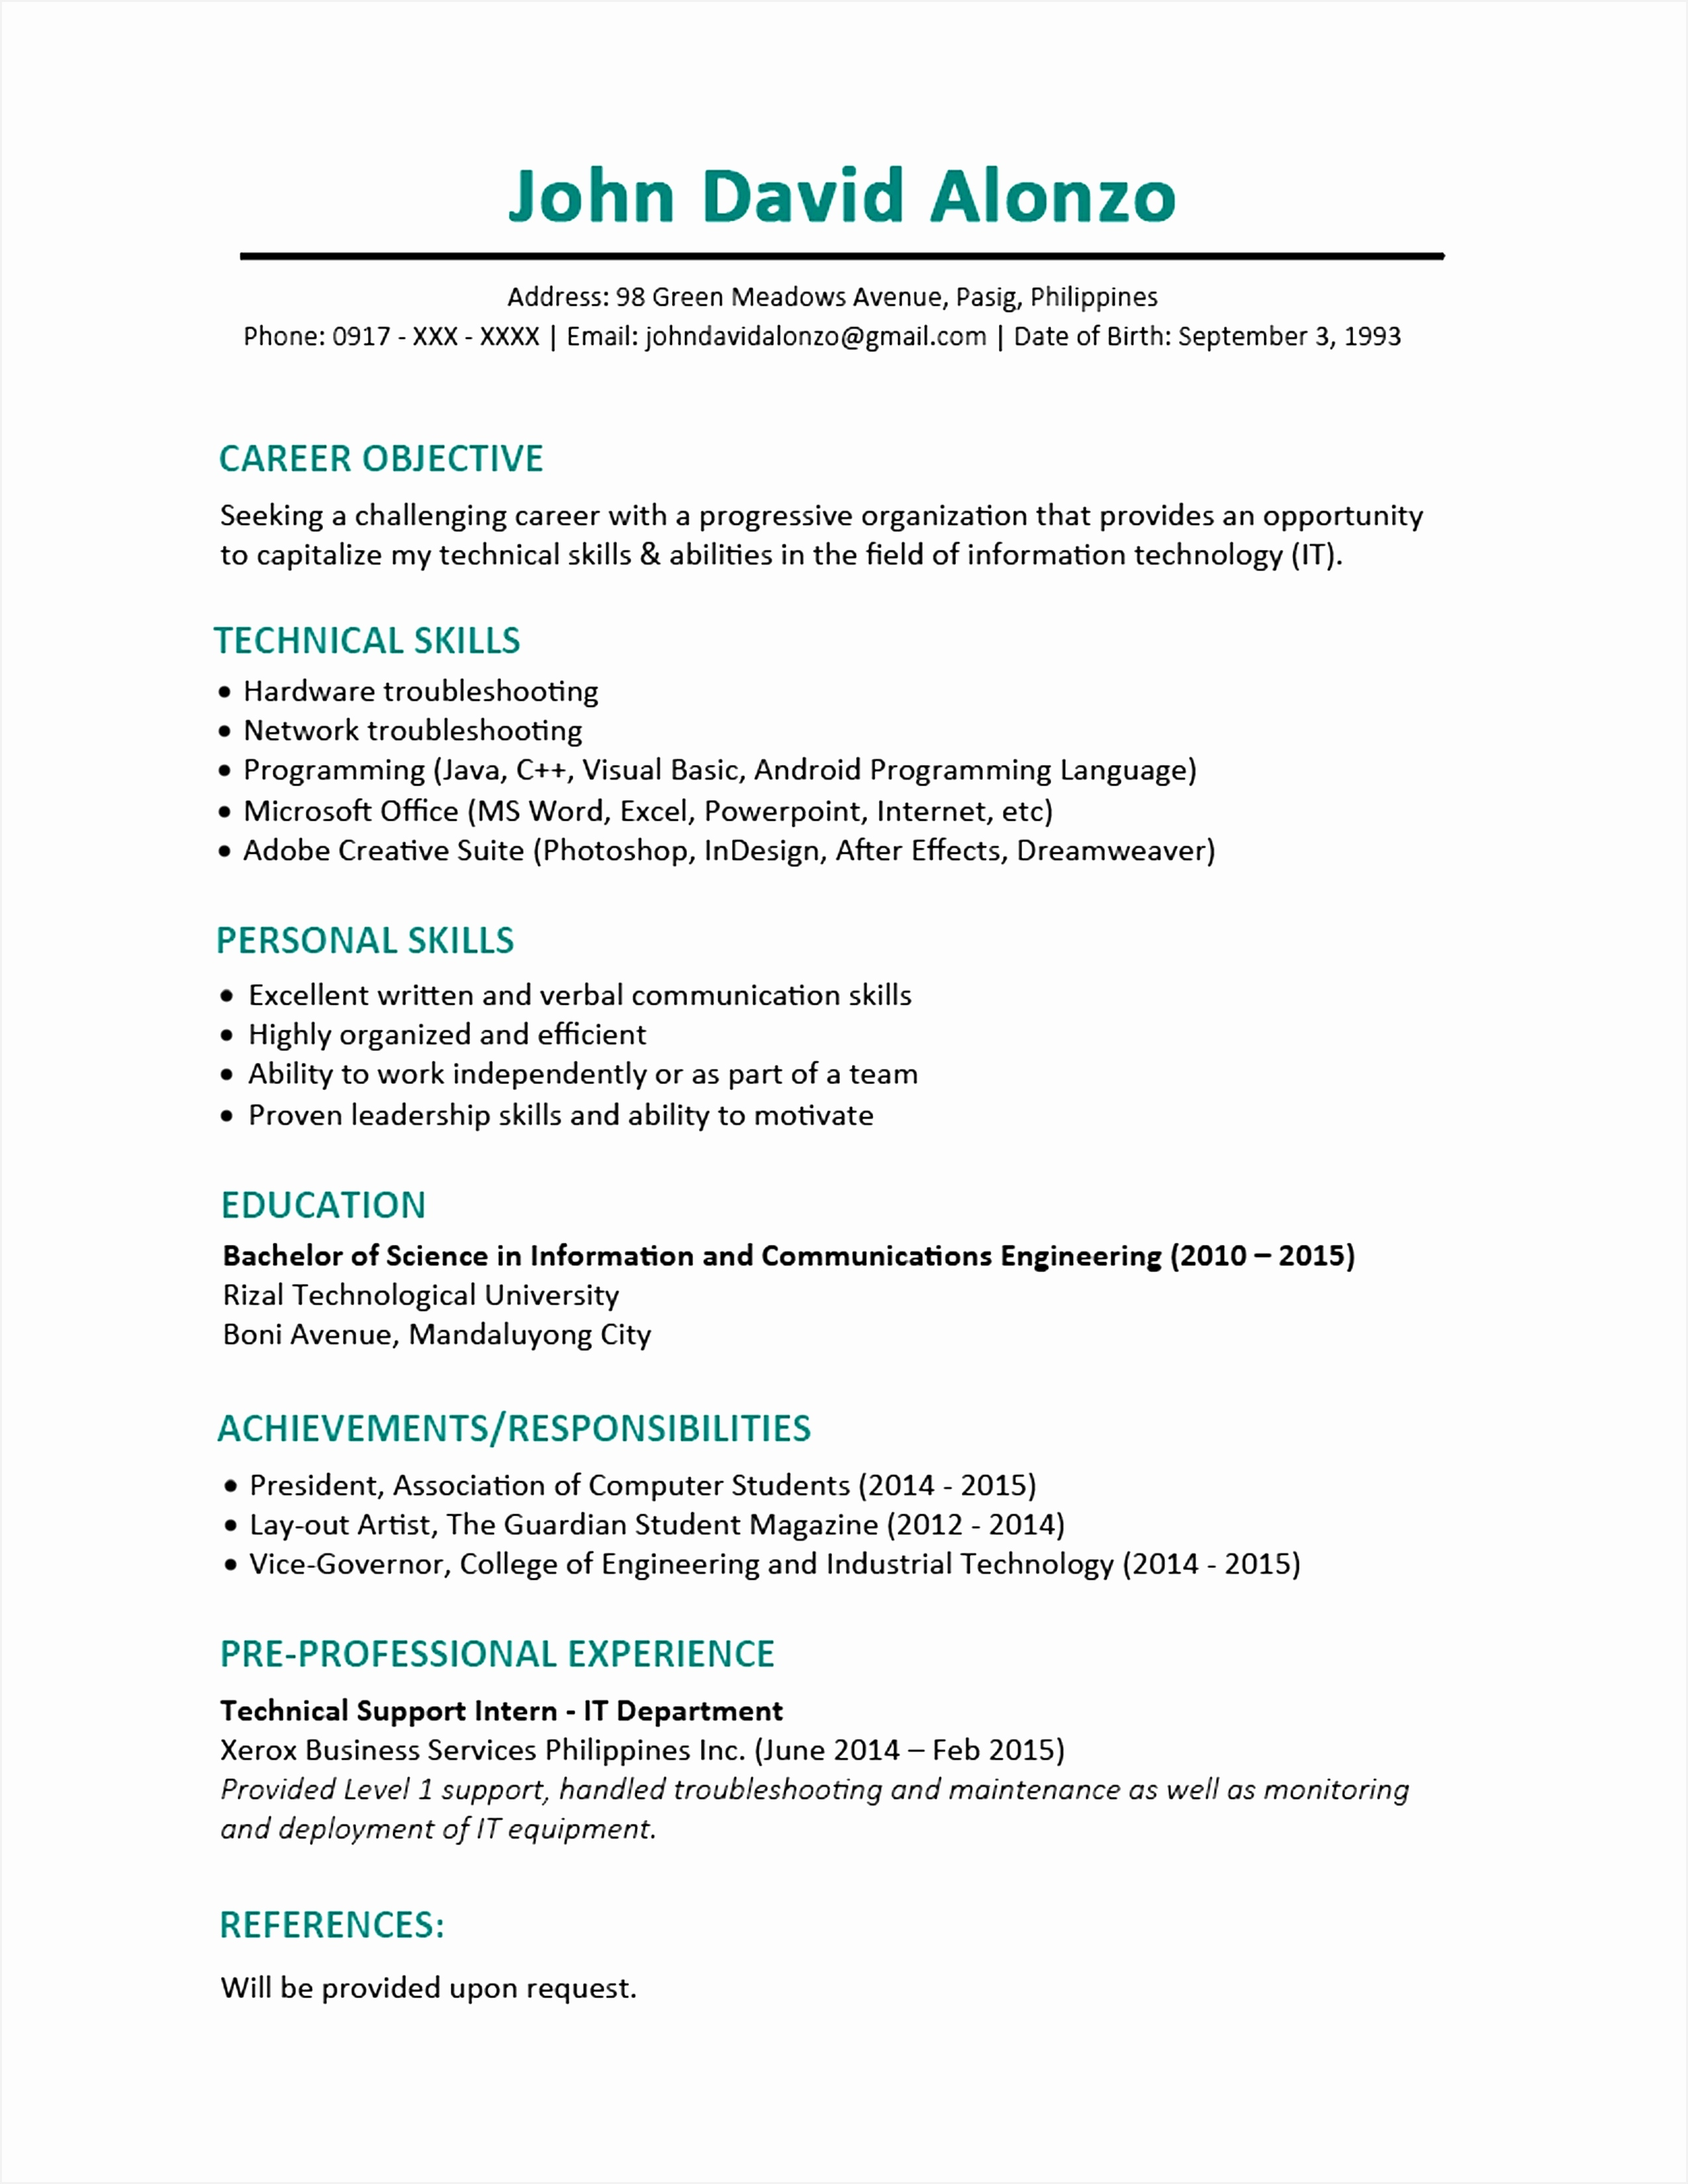 Create A Resume In Word Awesome Updated Writing A Resume for A Job Create A33002550